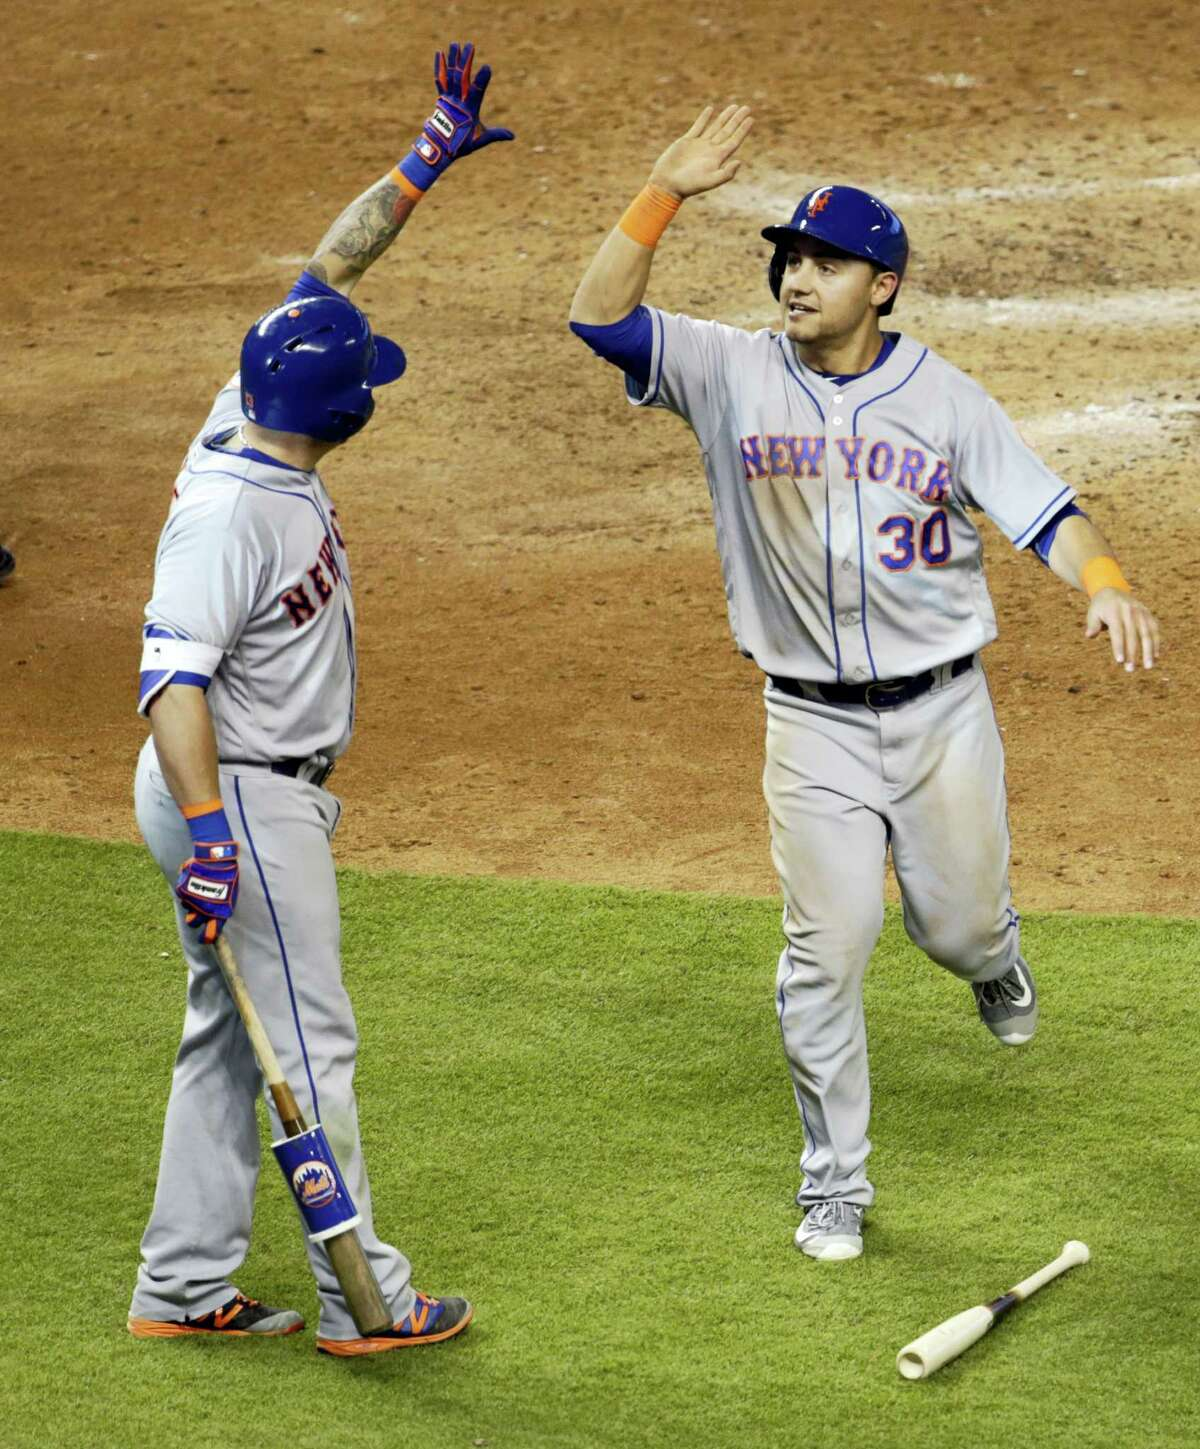 Michael Conforto, right, is greeted by Asdrubal Cabrera after scoring in the eighth inning.